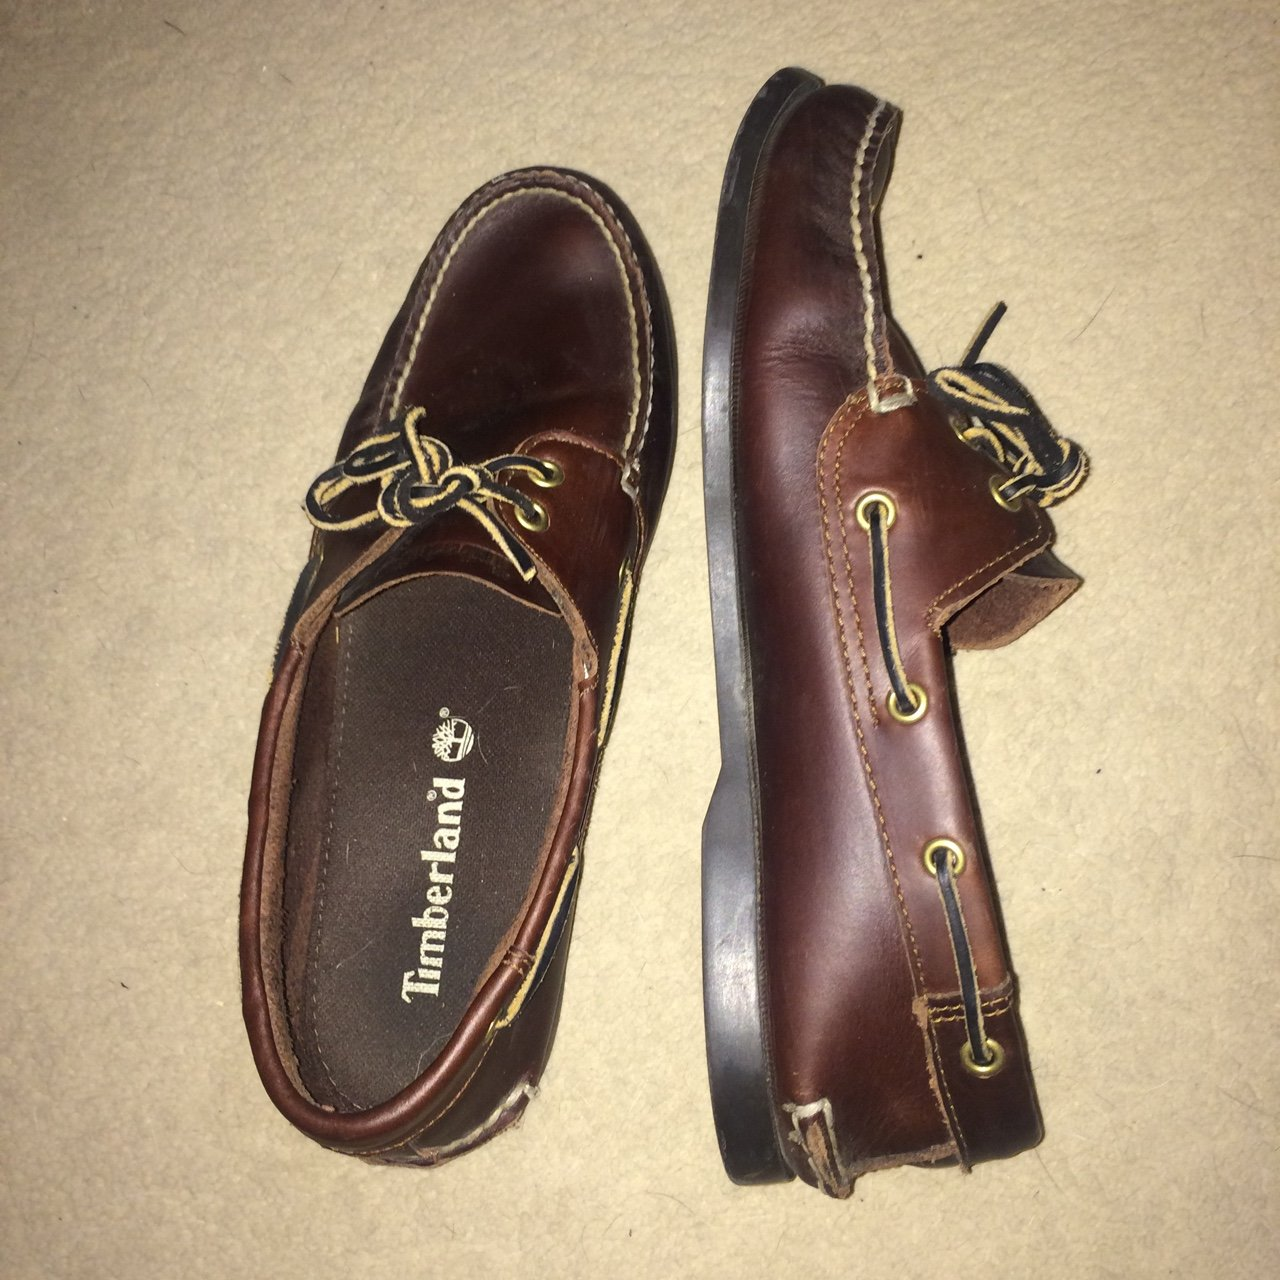 Size 10 Timberland Boat Shoes in Brown Colourway 74a6f54d9